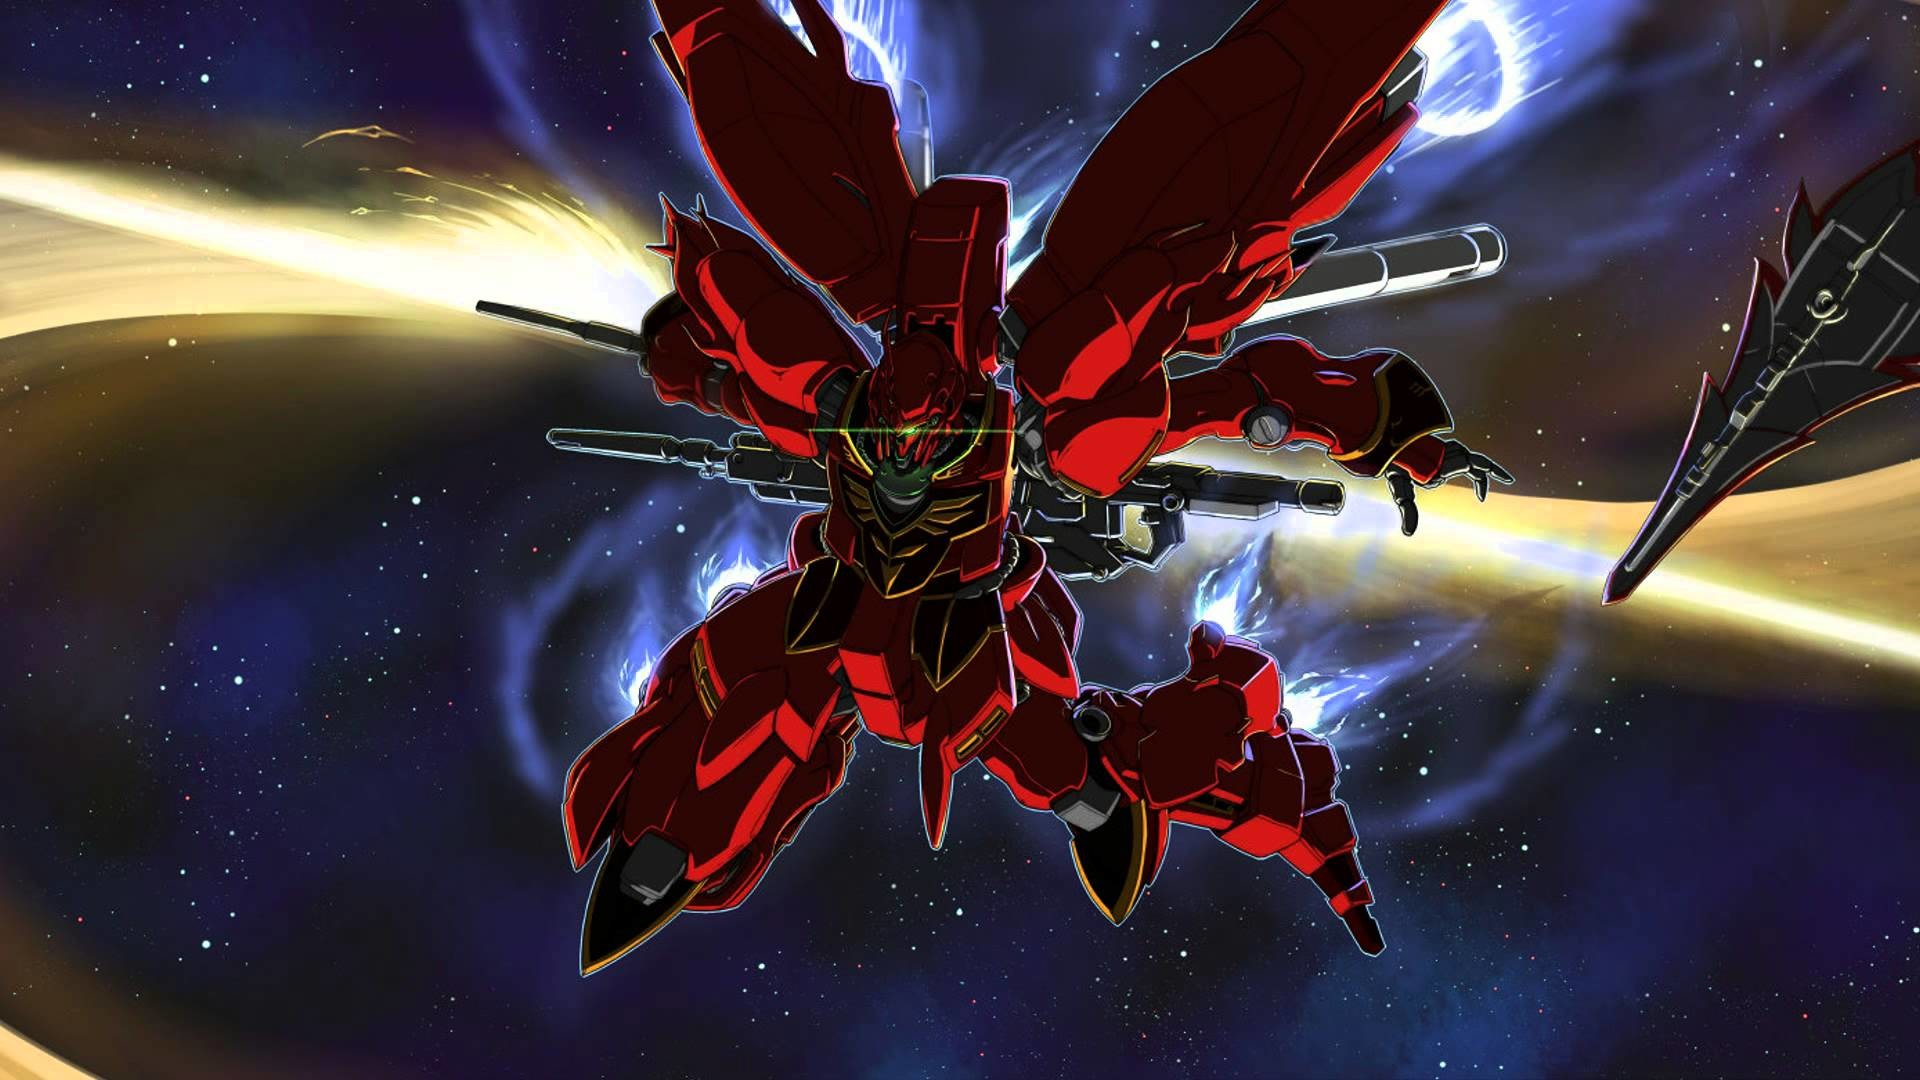 1920x1080 Gundam Unicorn Wallpapers by CaiusBallad81 | Photobucket | Epic Car  Wallpapers | Pinterest | Unicorns and Wallpaper